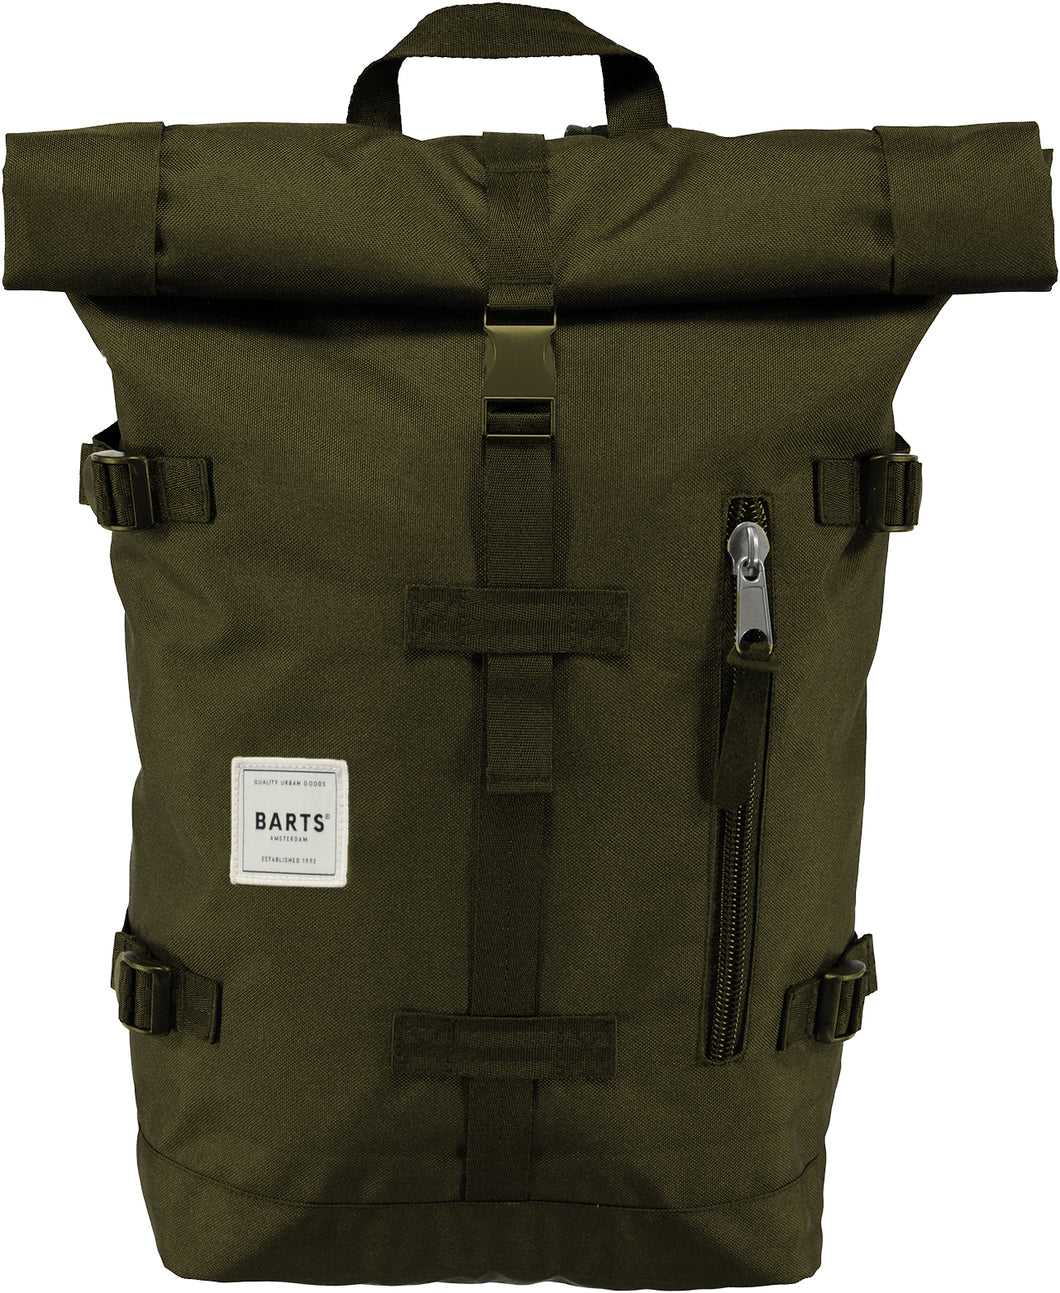 Barts Mountain Backpack Army